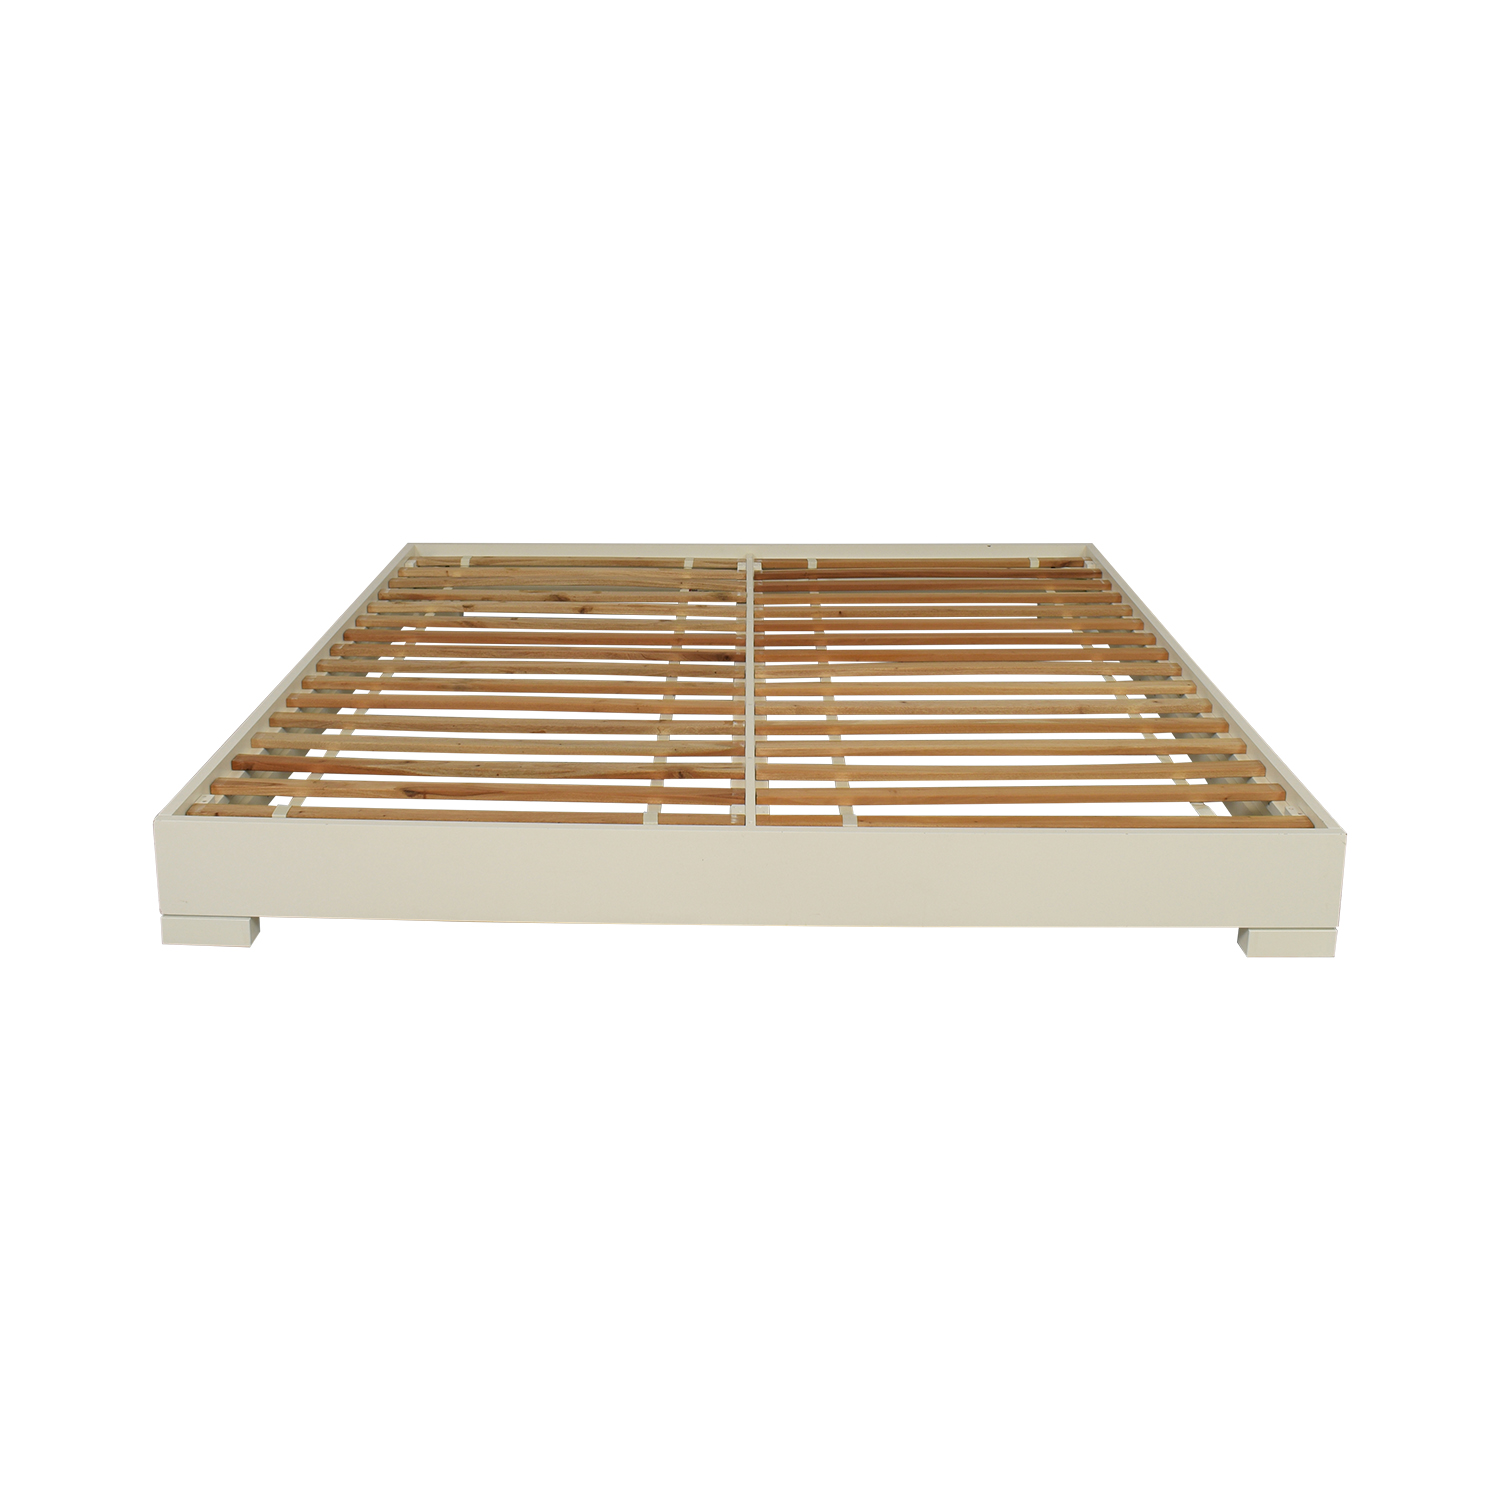 West Elm Chunky Wood King Bed Frame / Beds